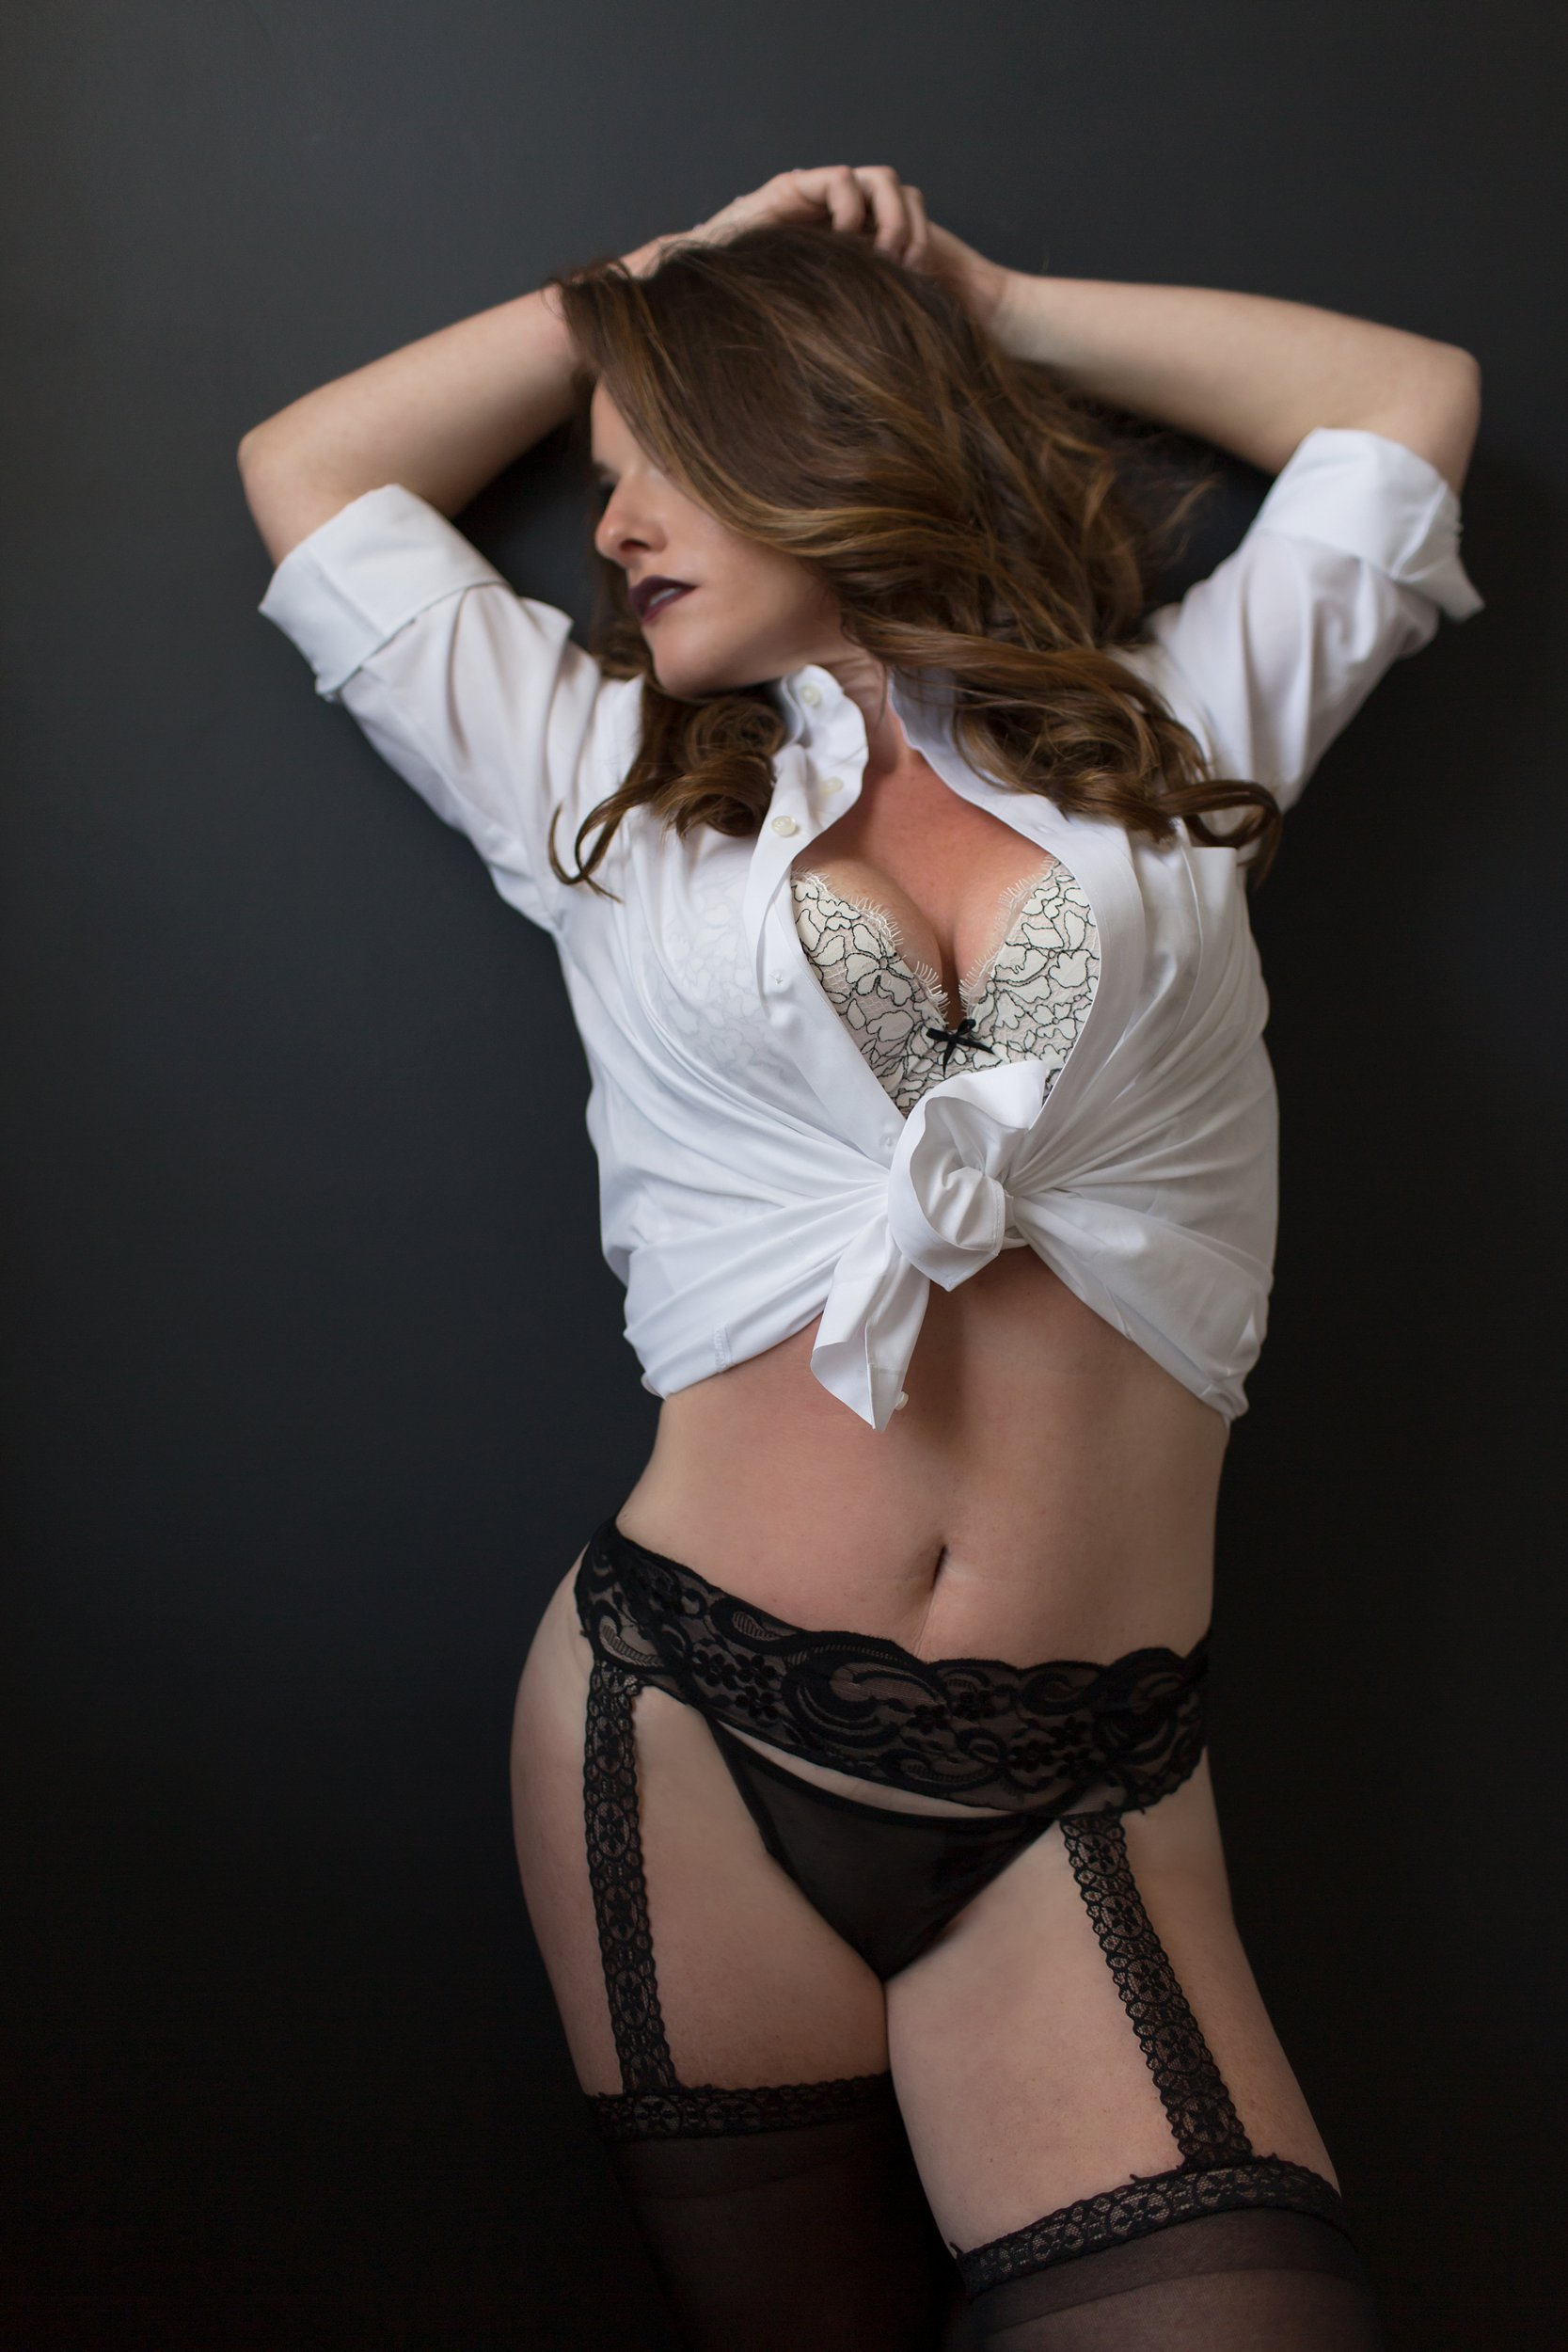 Boudoir in men's dress shirt and garter with stockings